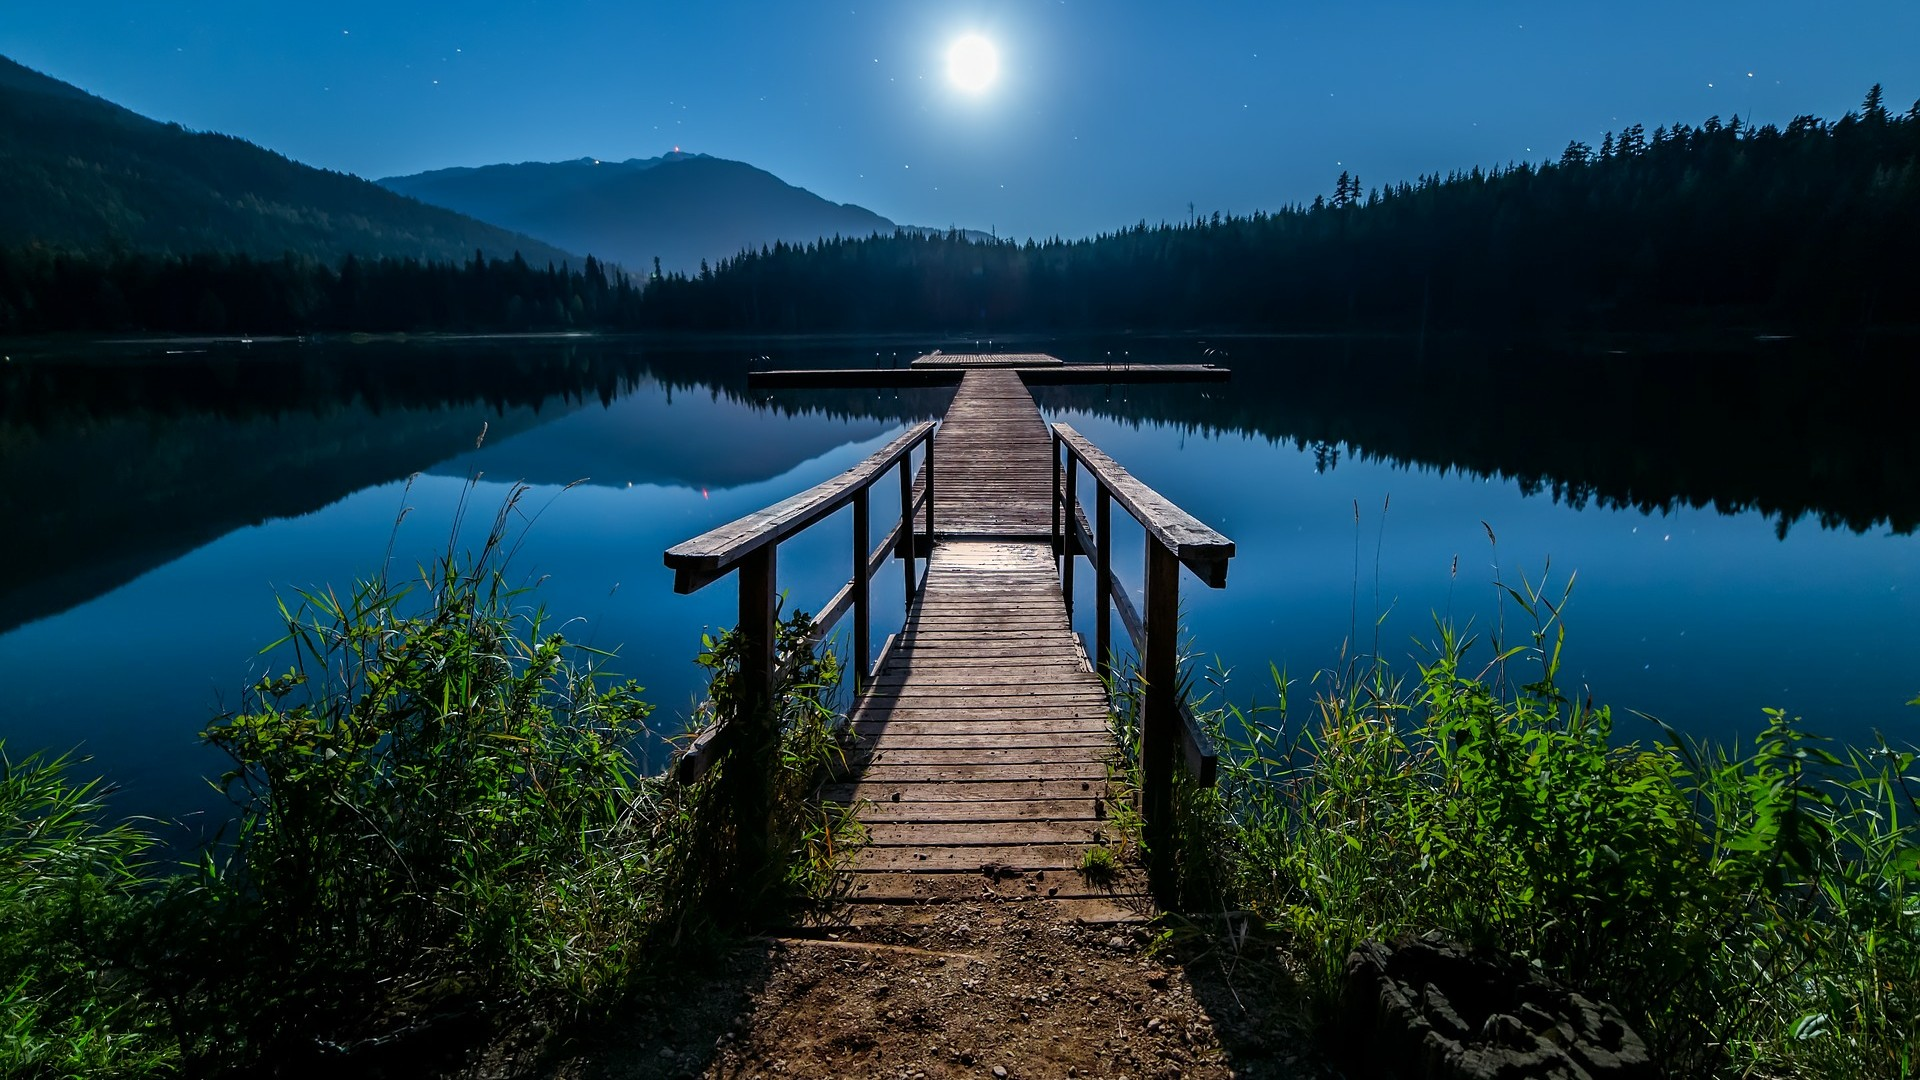 Iconic moonlight night view of Mount Hood and Lost Lake wallpaper